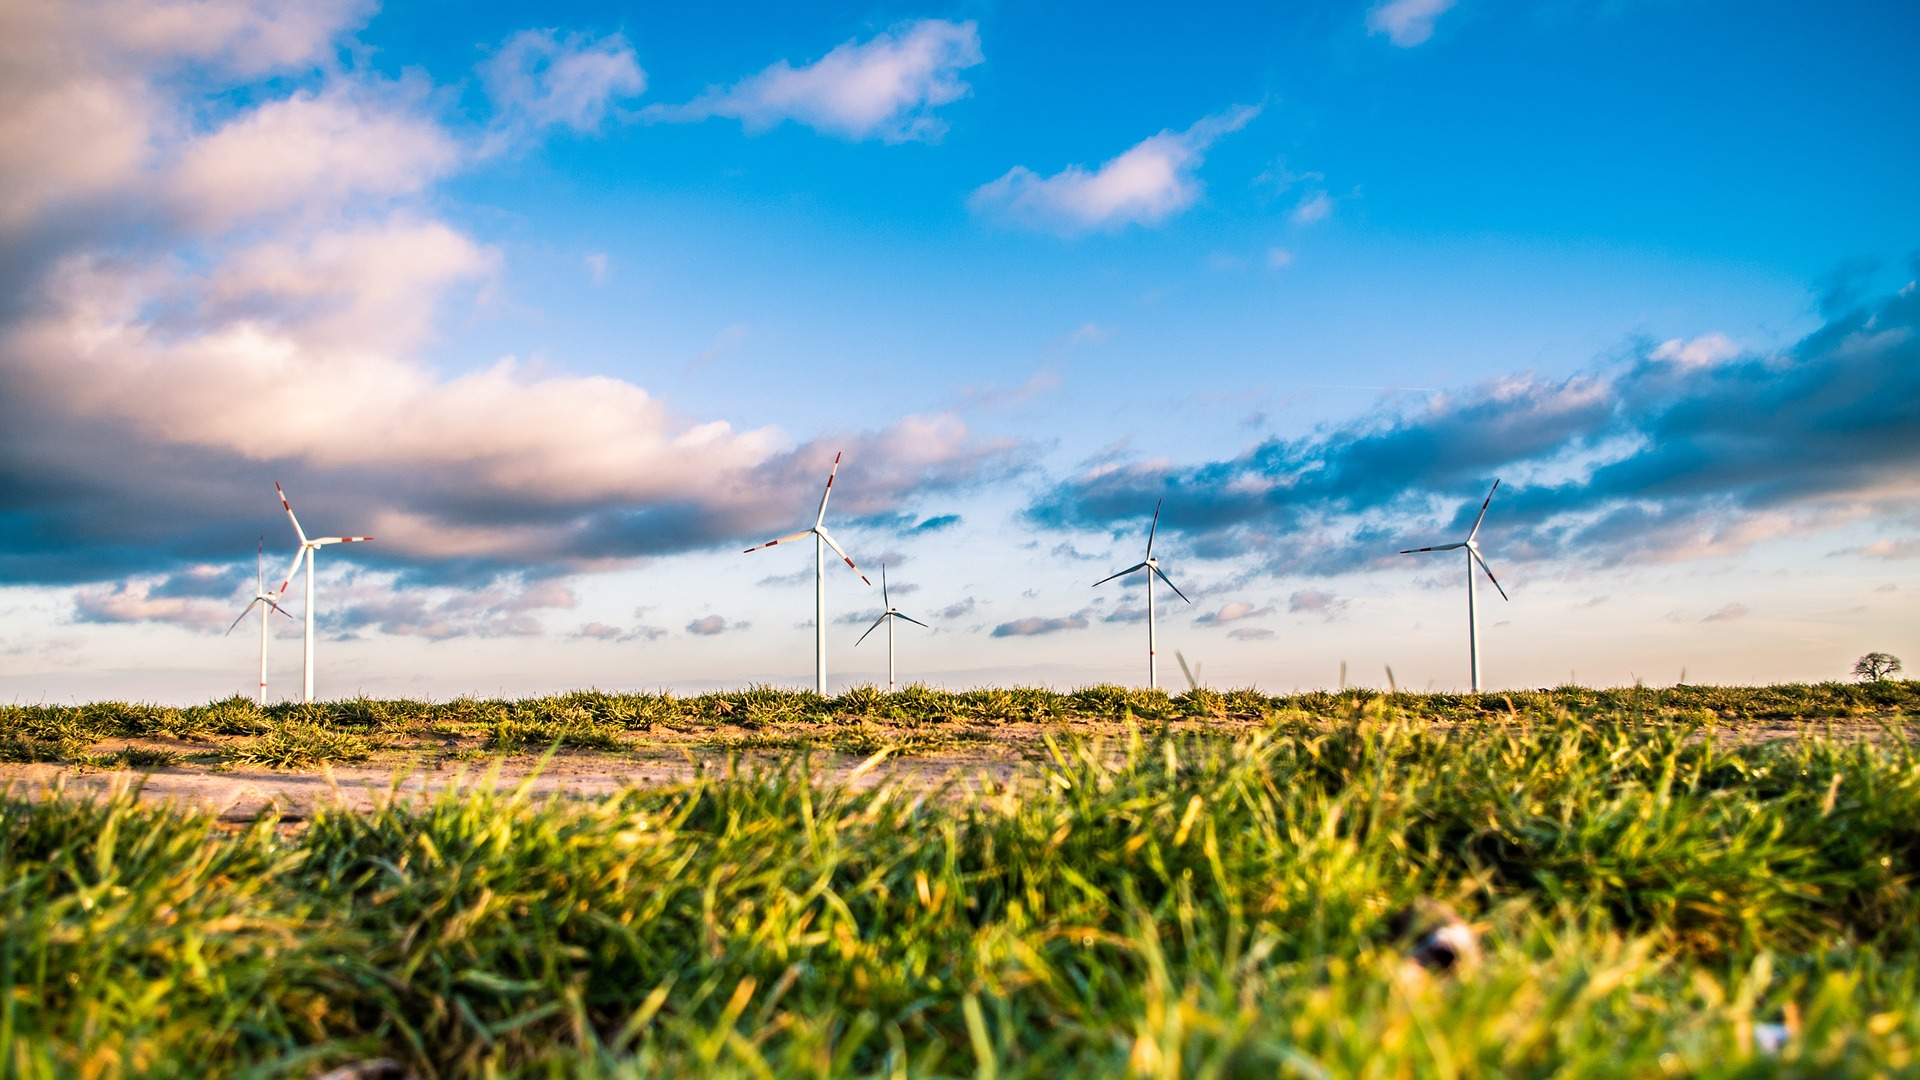 A new roadmap outlines transitioning 139 countries to using 100 percent renewable energy sources by the year 2050.